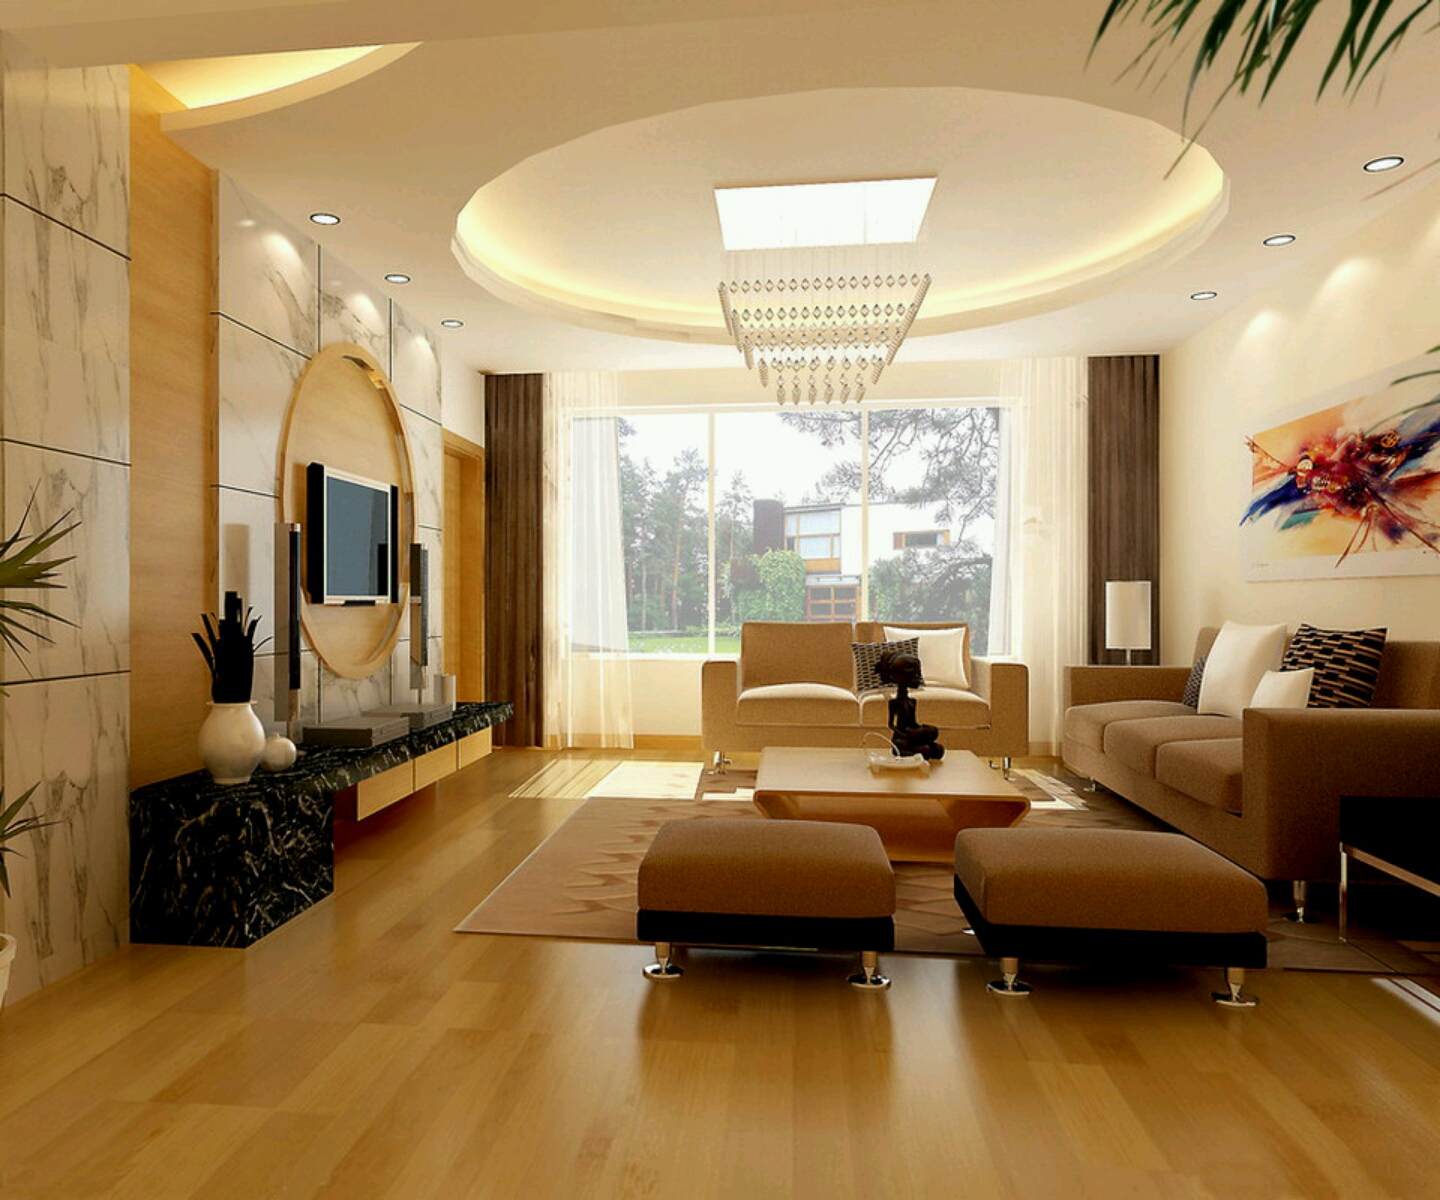 Modern interior decoration living rooms ceiling designs for Home furnishing ideas living room